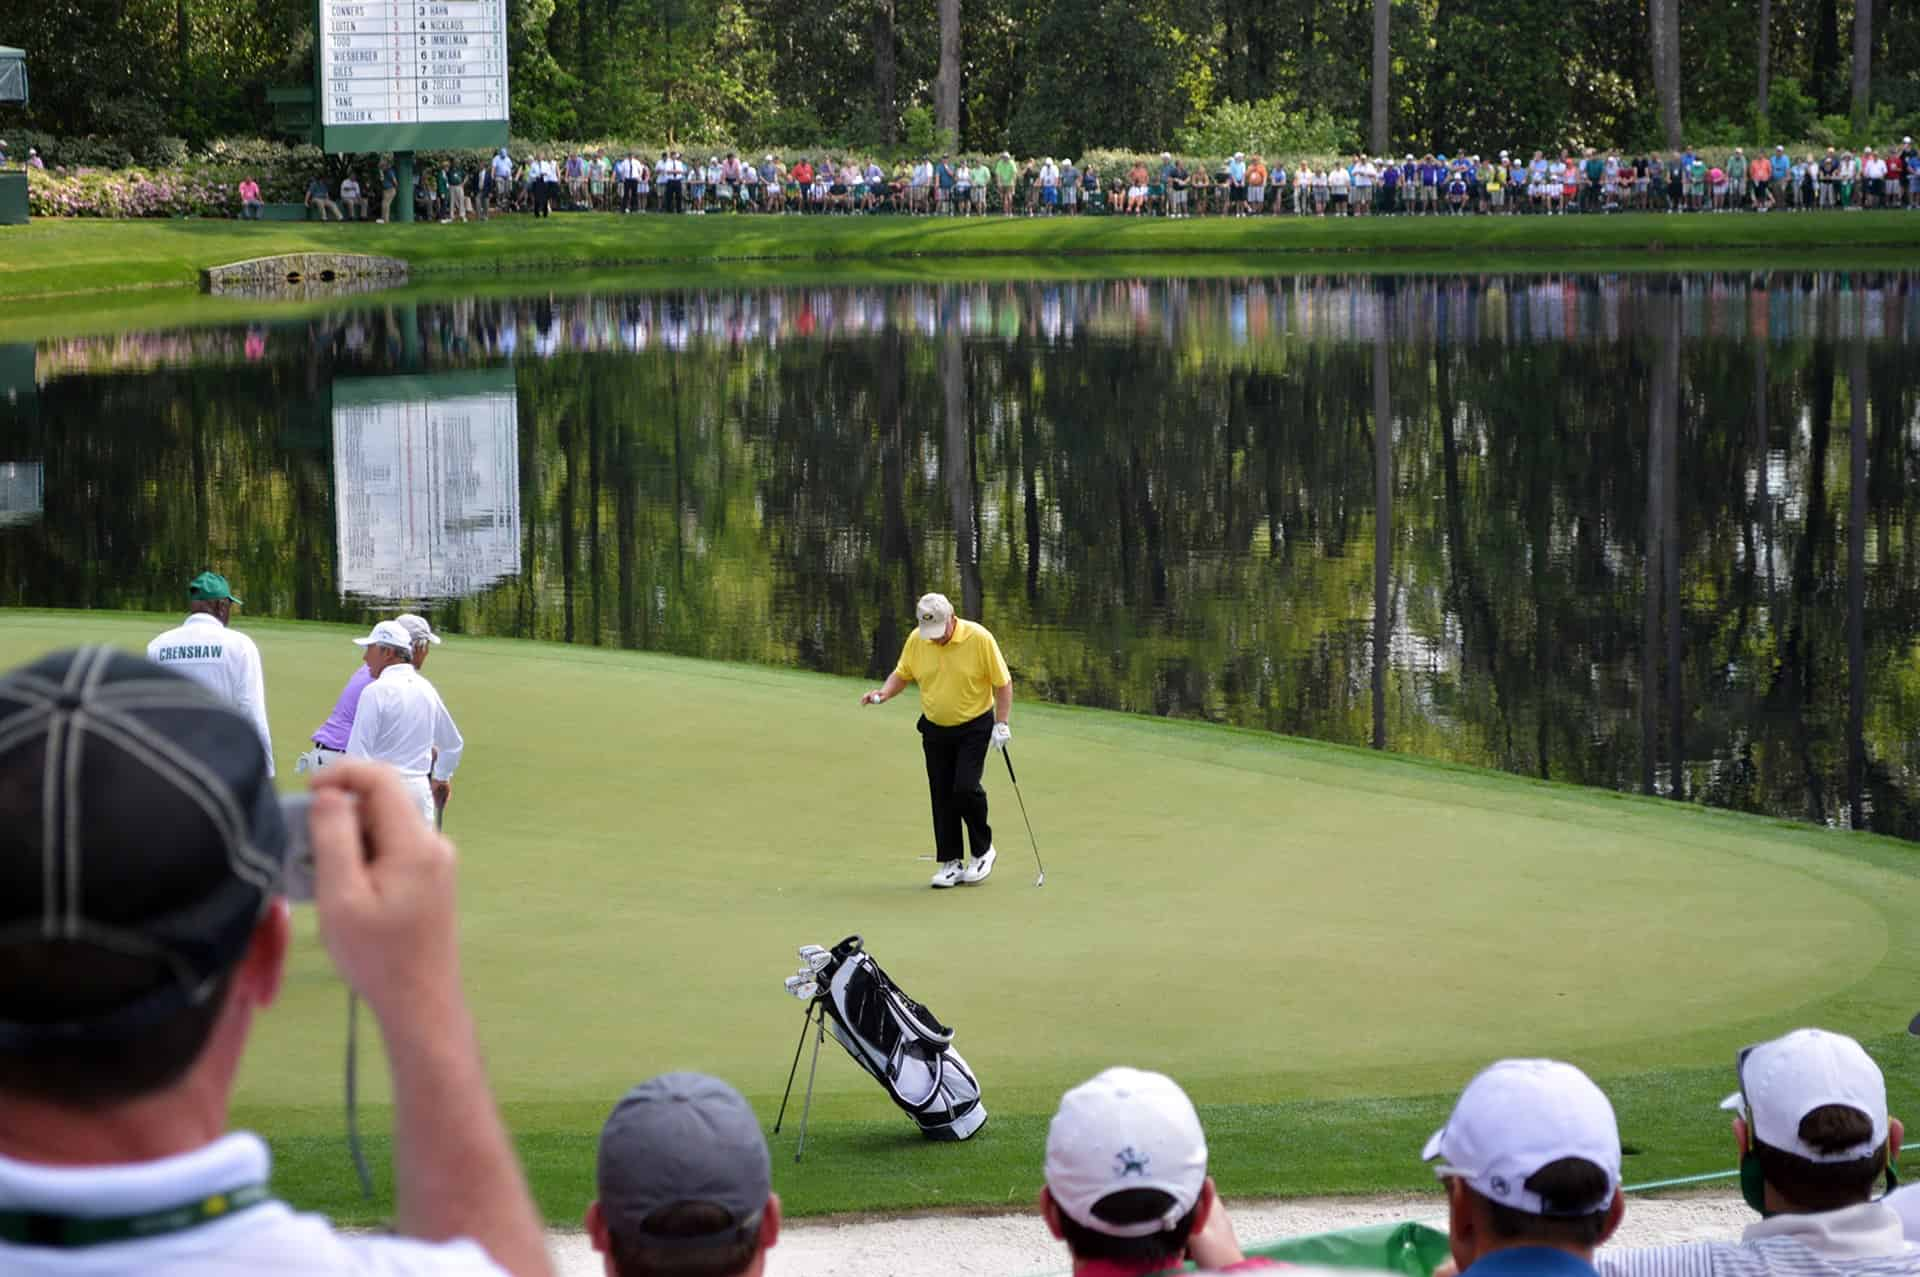 Jack Nicklaus on the green during the par 3 contest with shimmering water in the background, a large crowd in the distance and taken from the perspective of a fan near and overlooking the green.